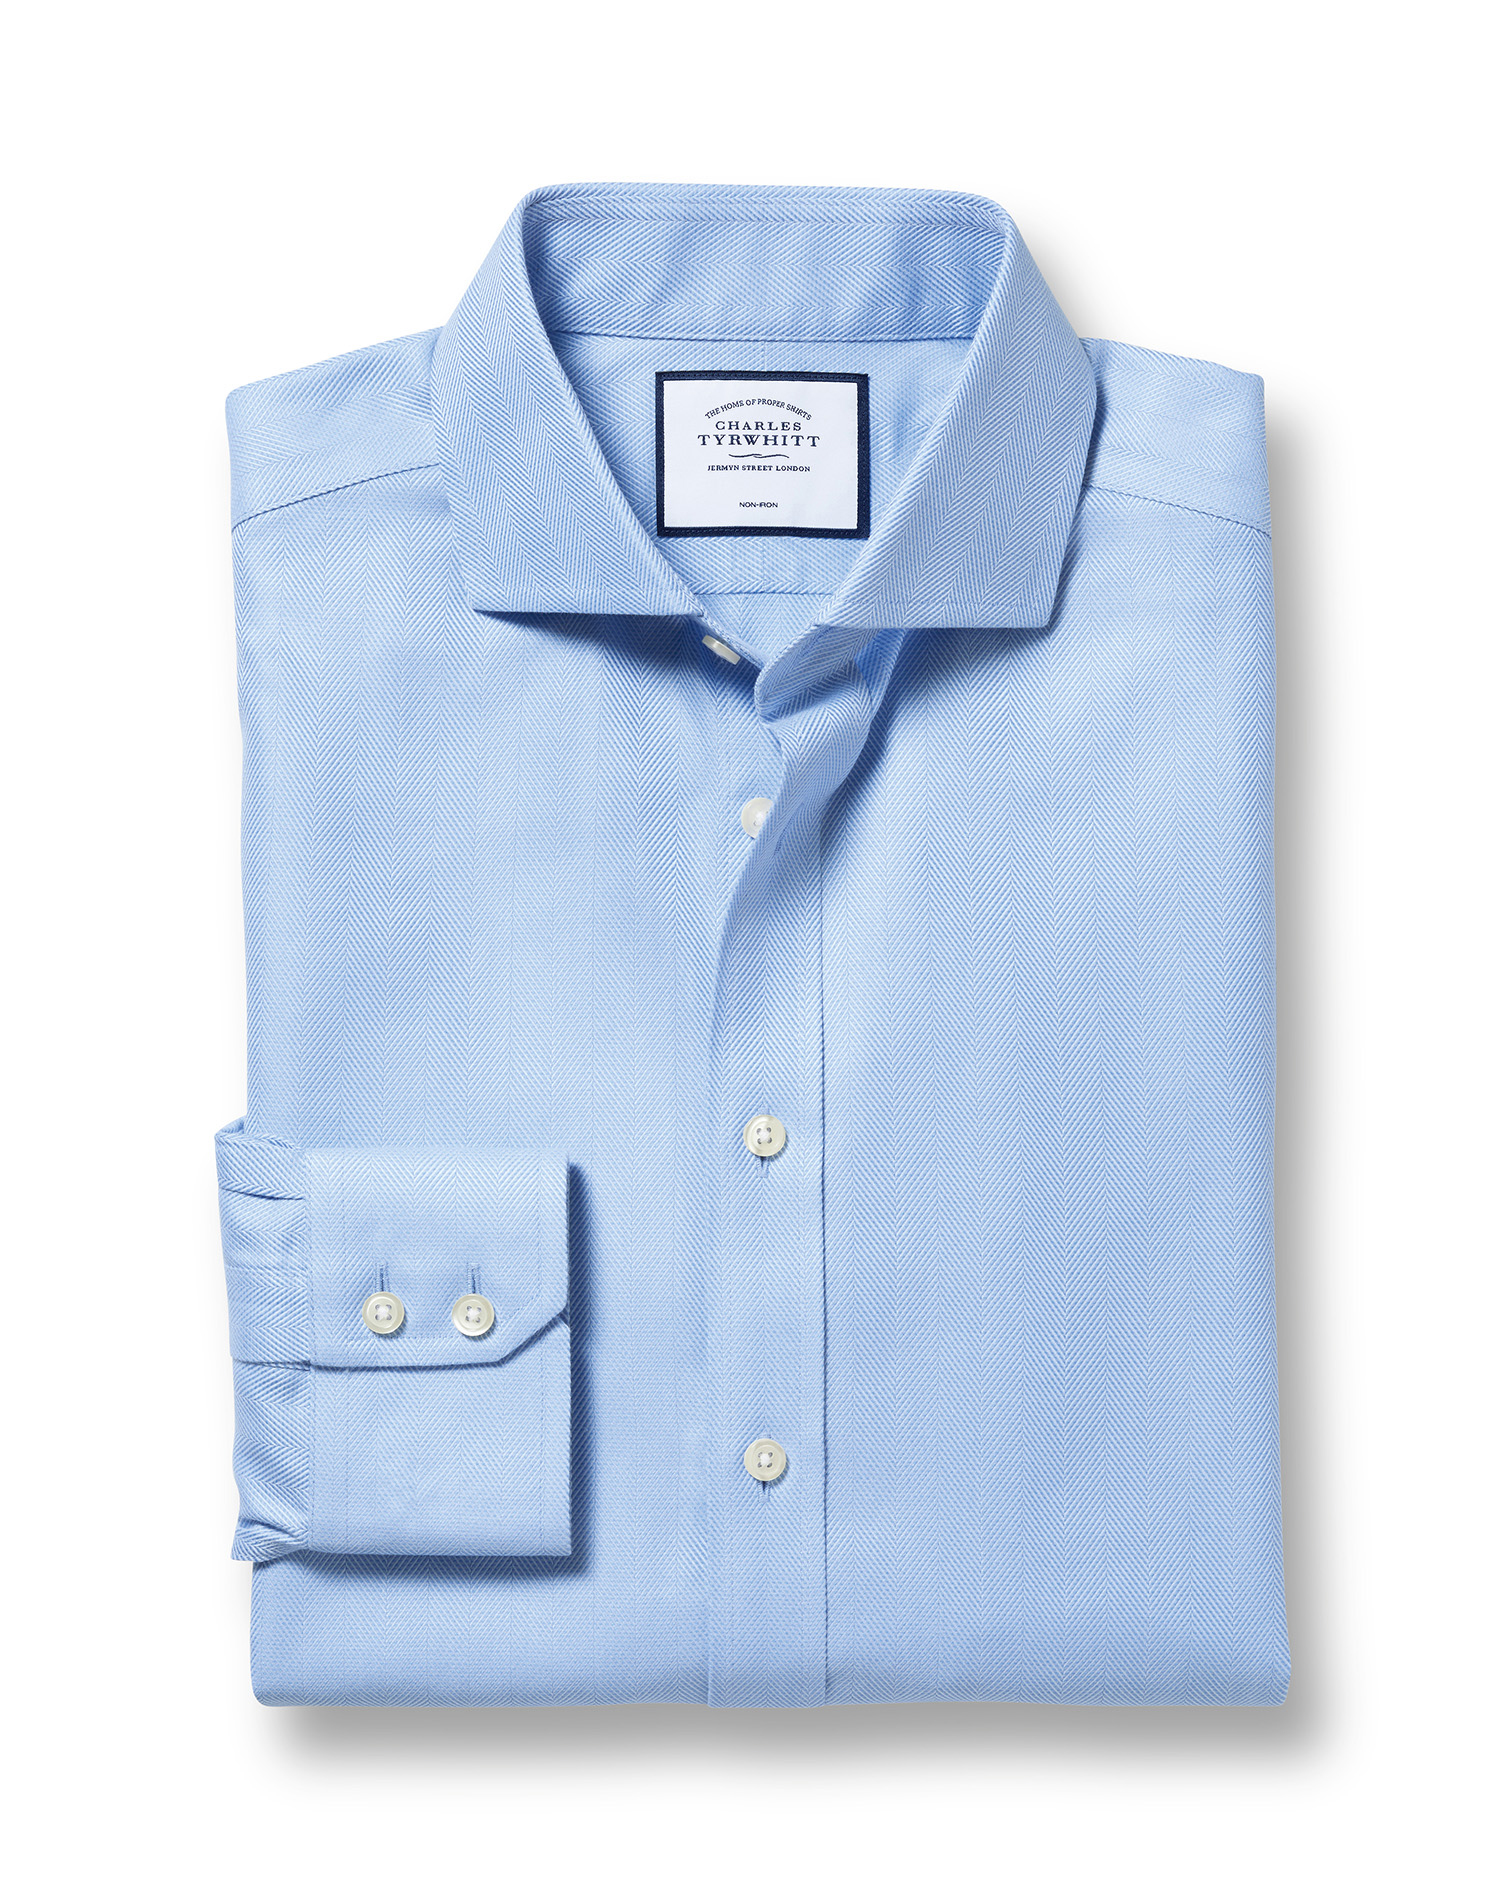 Extra Slim Fit Non-Iron Sky Blue Herringbone Cotton Formal Shirt Single Cuff Size 17/37 by Charles T